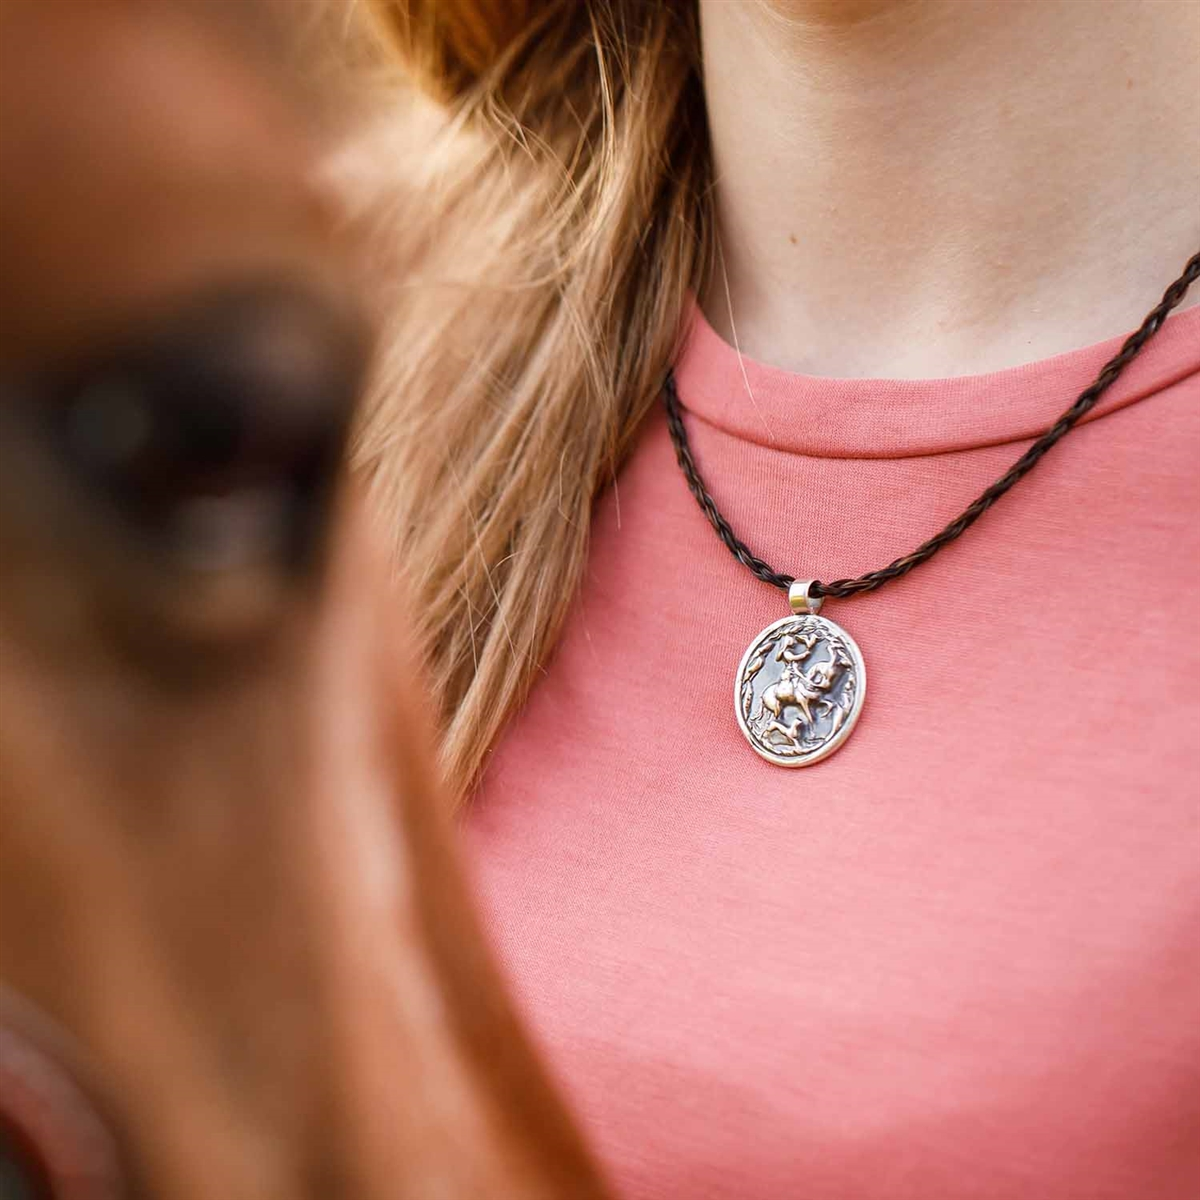 Spirithorse designs epona sterling silver necklace epona sterling silver horse necklace mozeypictures Image collections